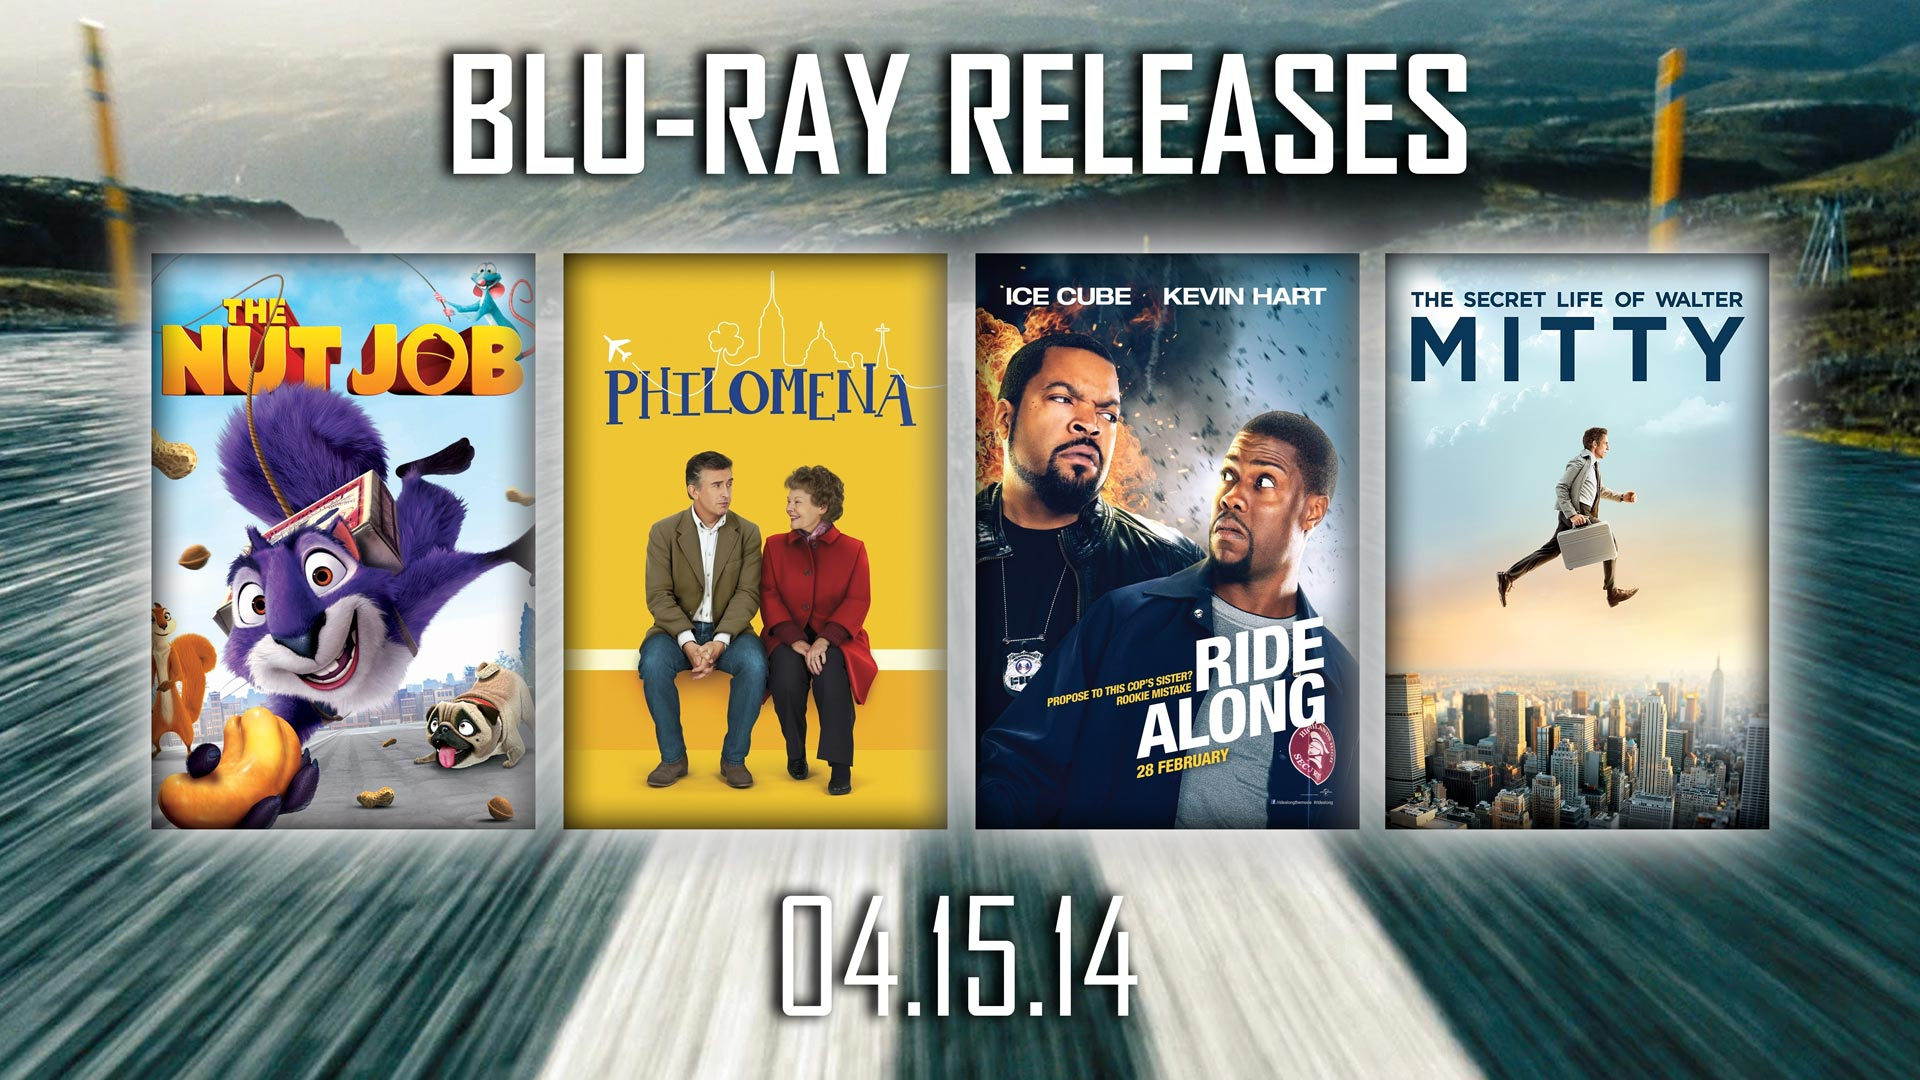 new movies releases | Euro Palace Casino Blog